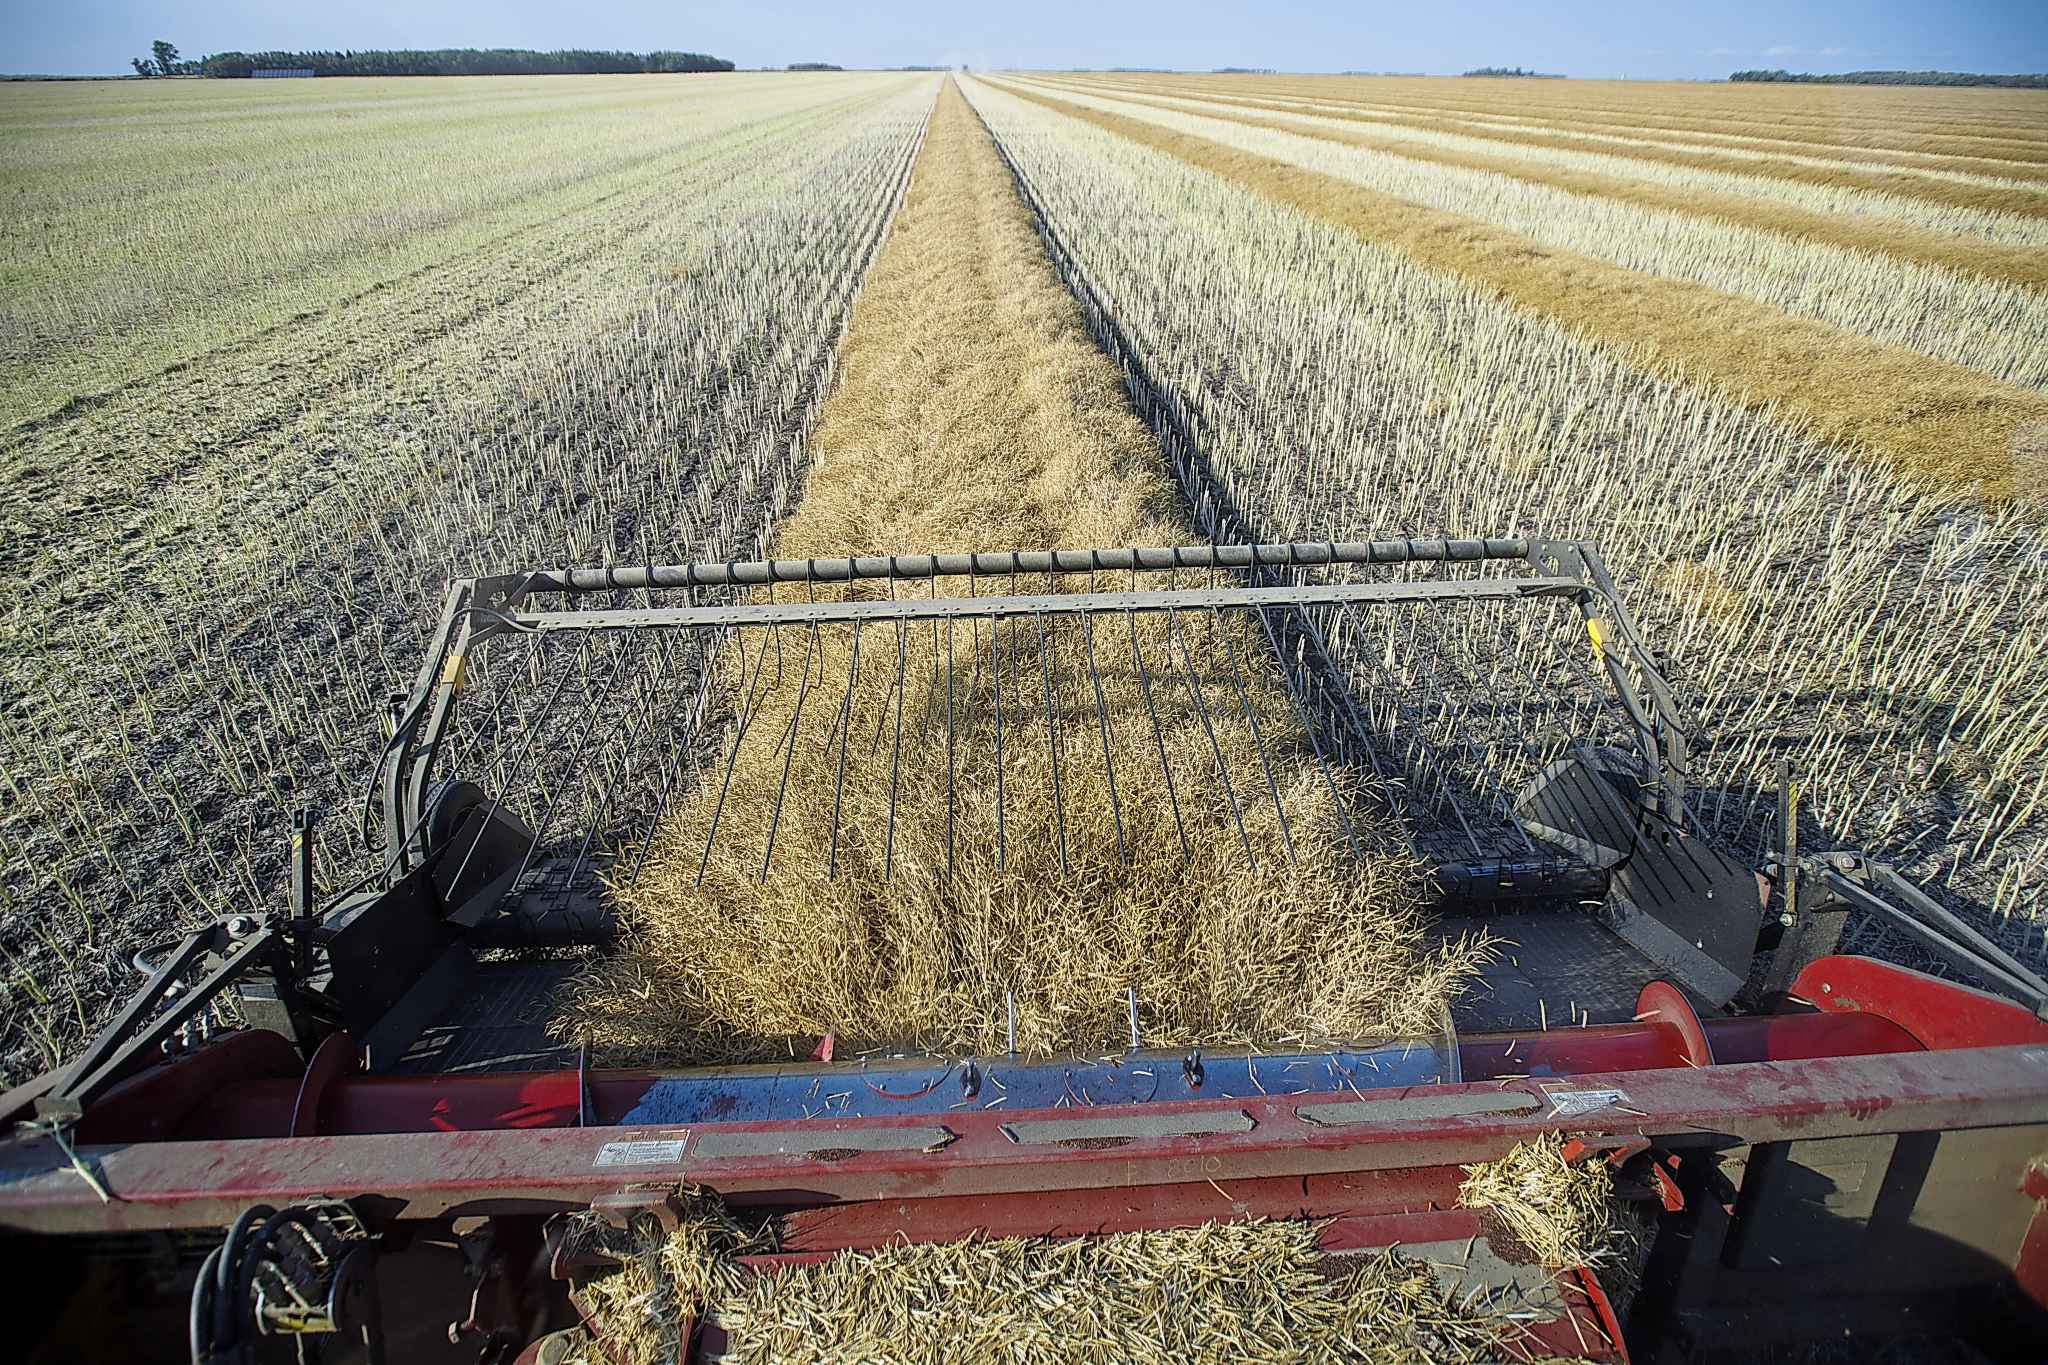 Colin leaves some plant debris on the fields at the end of the season and rotates his crops to deter pests and diseases.